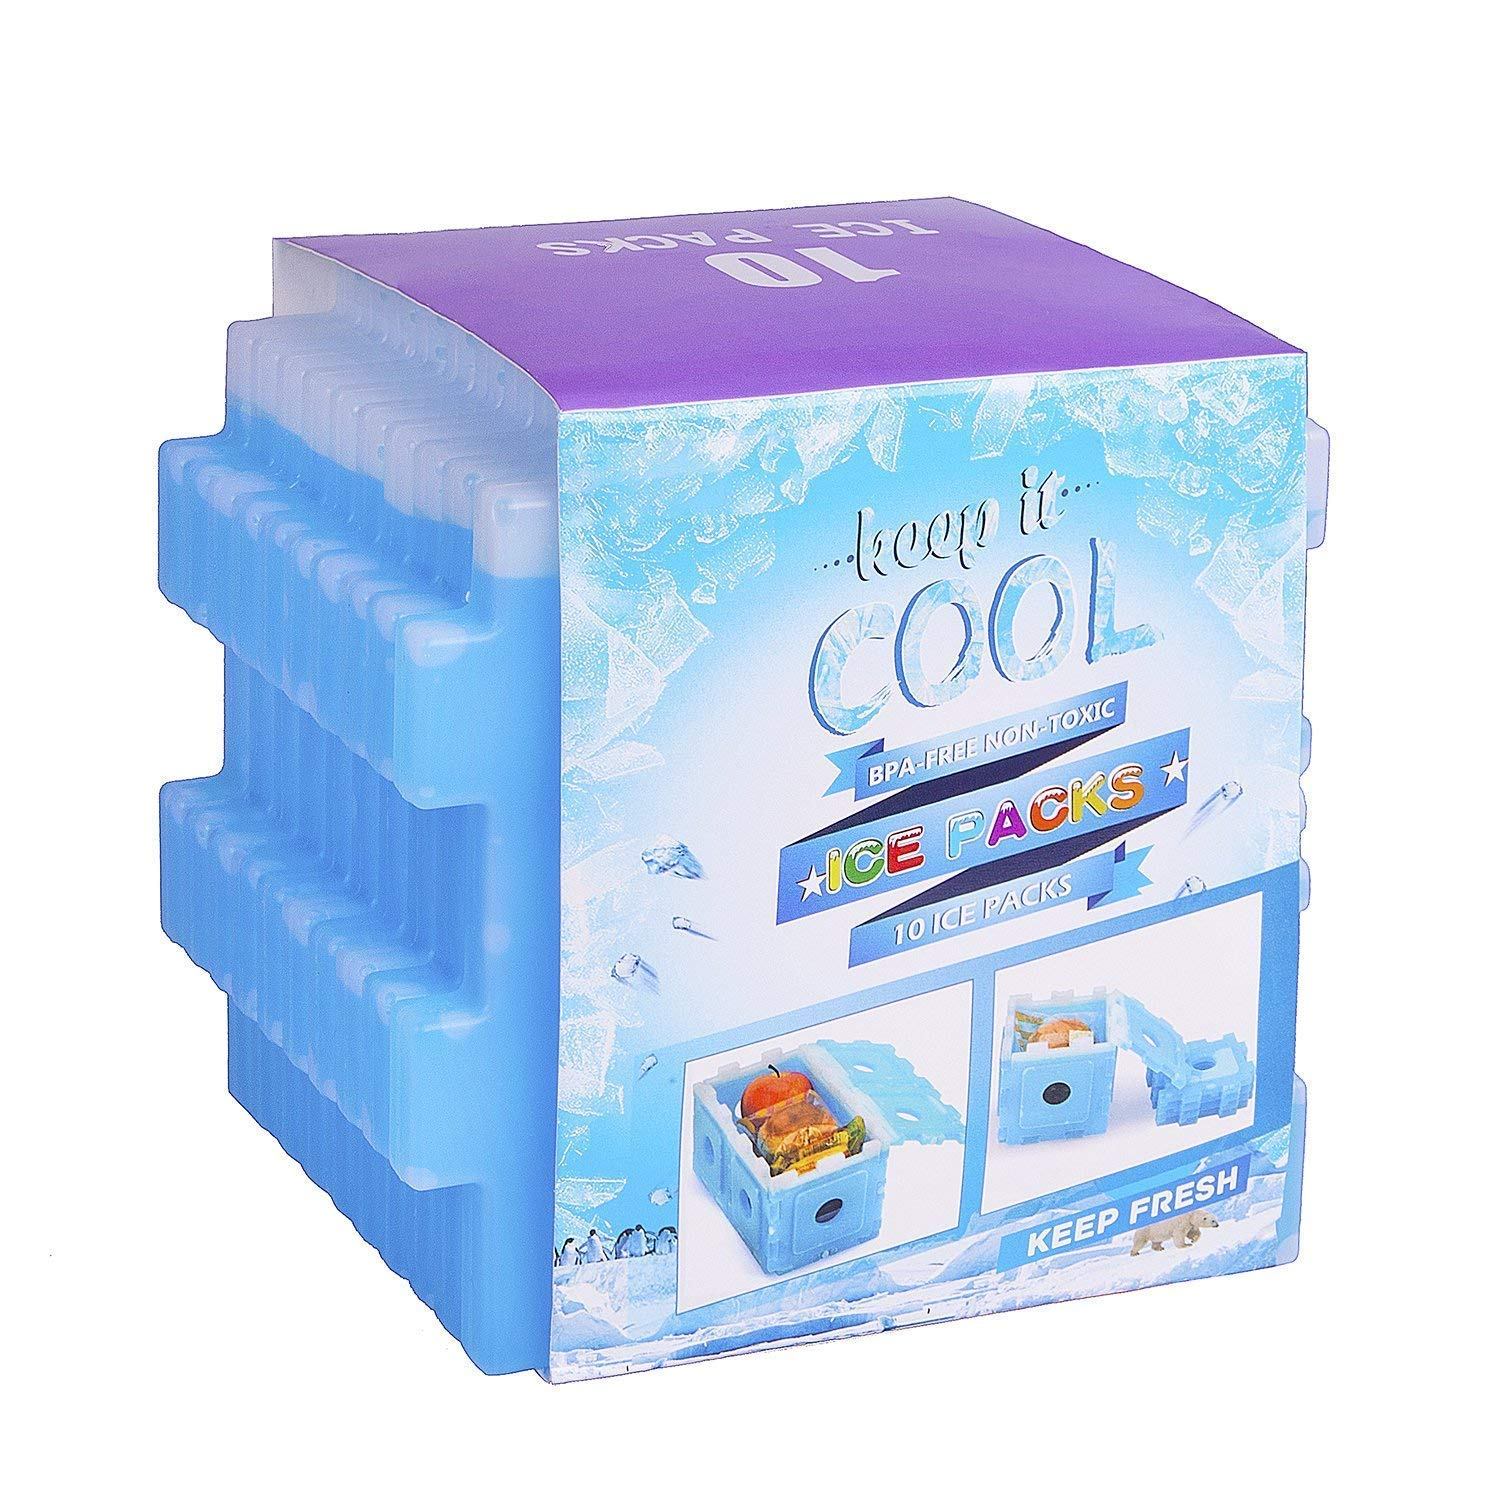 Ice Packs,Beyetori Cool Pack for Lunch Box,Freezer Packs for Lunch Bags and Coolers,Ice Pack Slim Reusable,Long-Lasting Freezer Ice Packs,Ice Packs-Great for Coolers,Ice Cube Blue (Blue, 10)